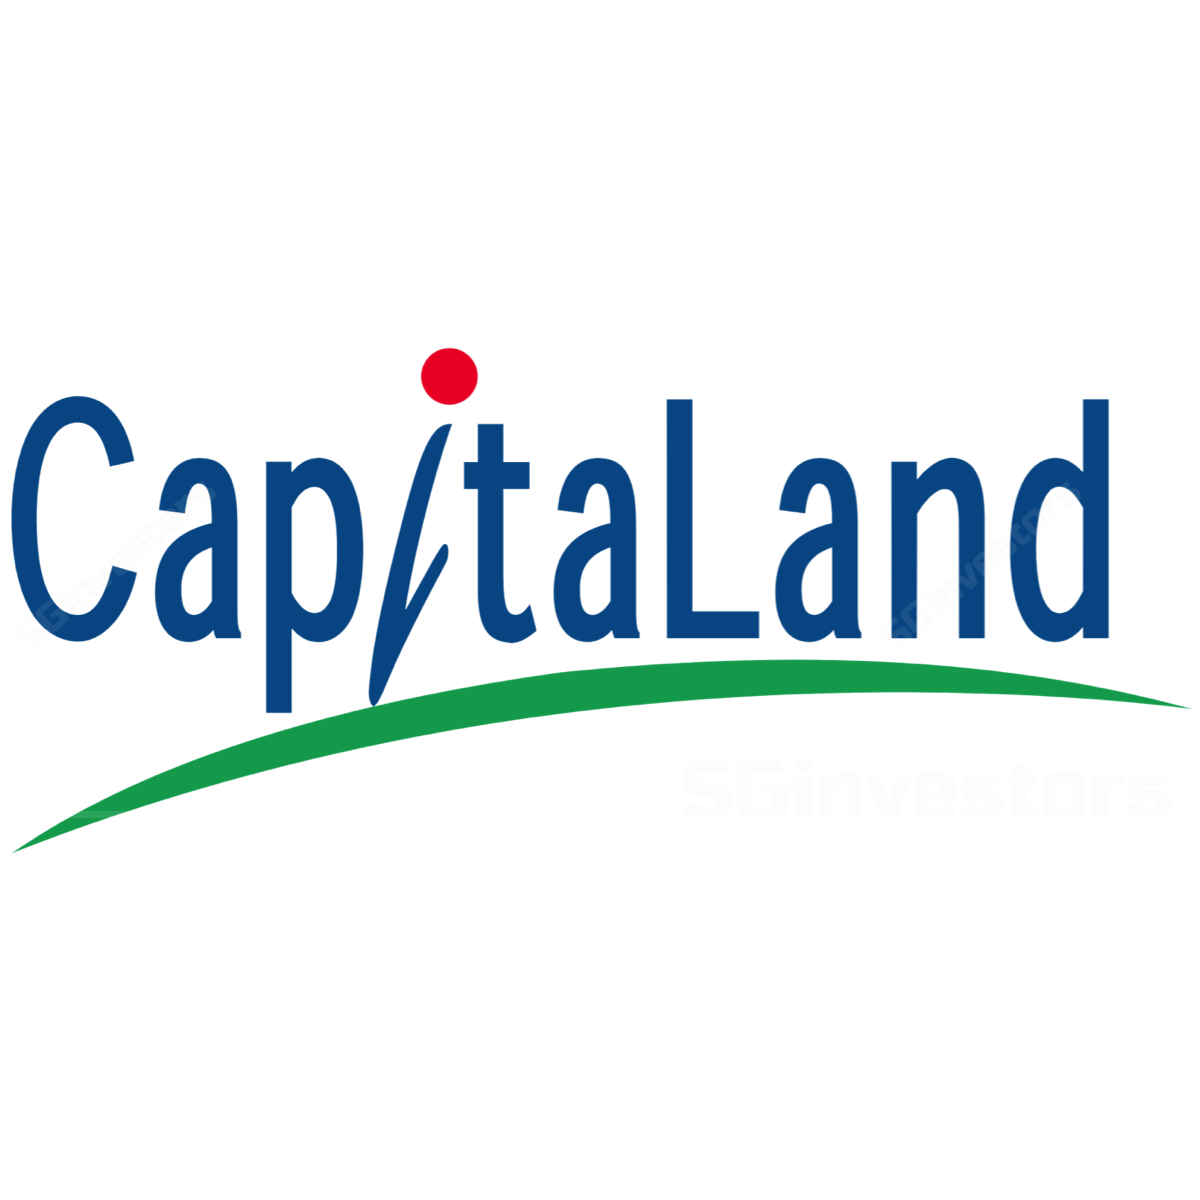 CapitaLand - DBS Vickers 2017-07-07: Upward March